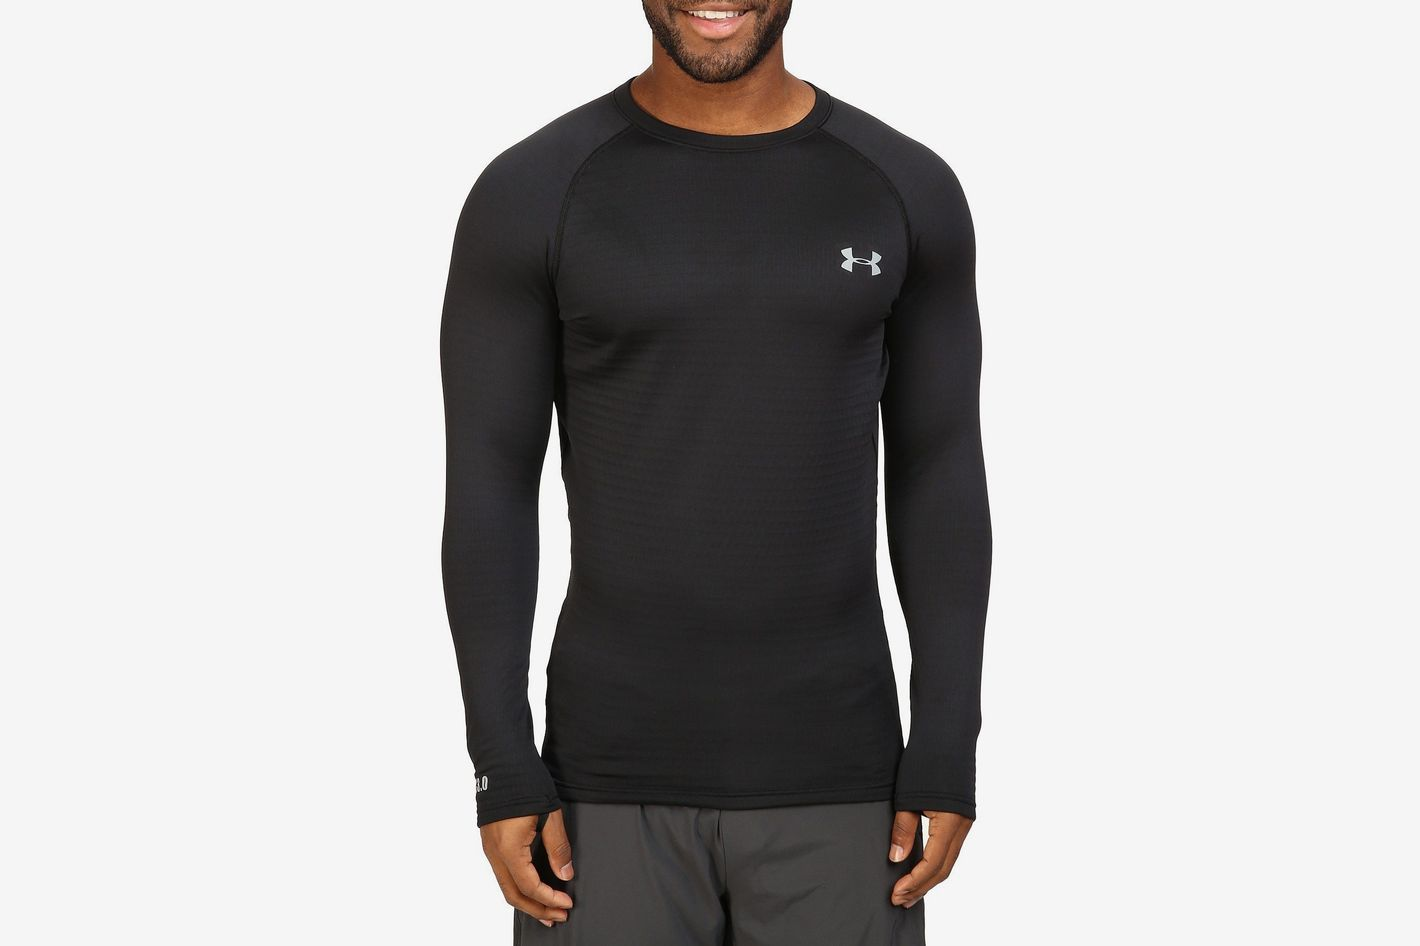 Under Armour UA Base 3.0 Crew Men's Long Sleeve Shirt